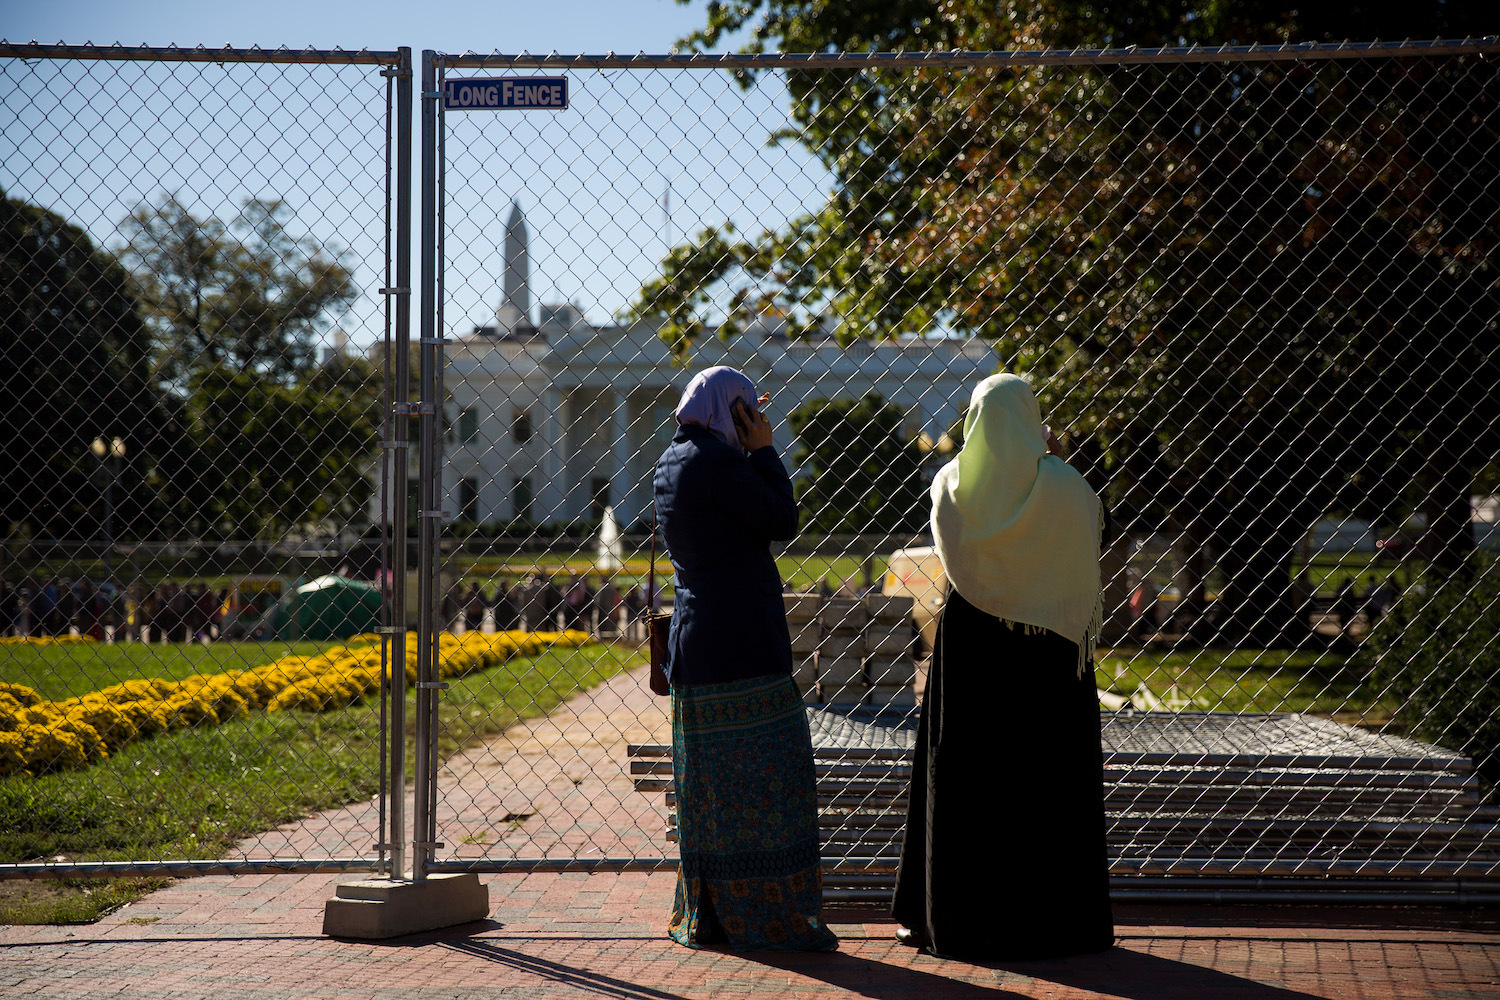 Draft DHS Report Called for Long-Term Surveillance of Sunni Muslim Immigrants